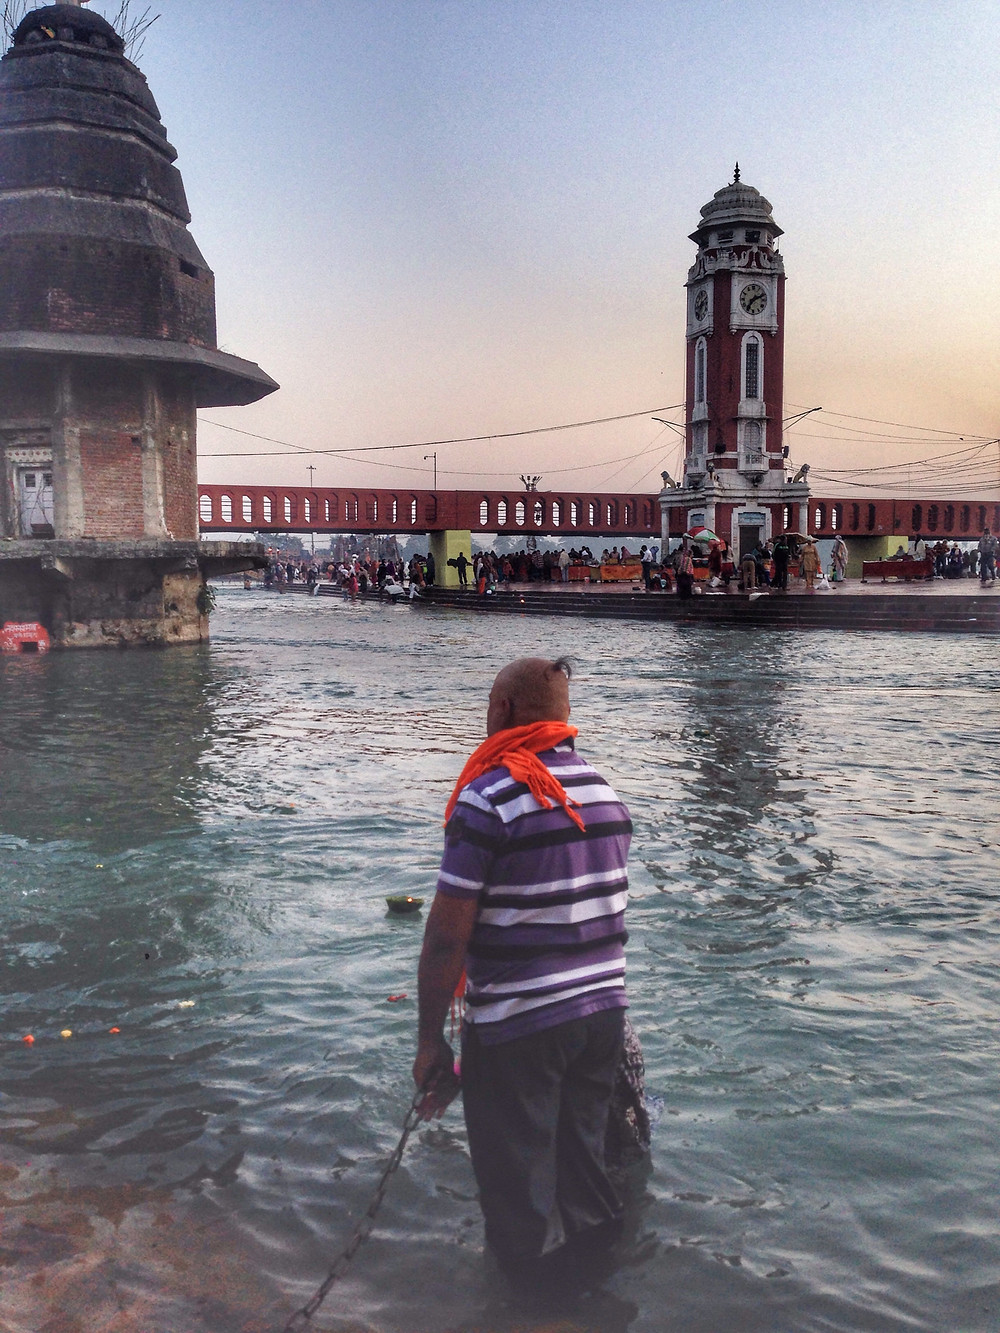 Devotees taking a dip in the holy river Ganges.